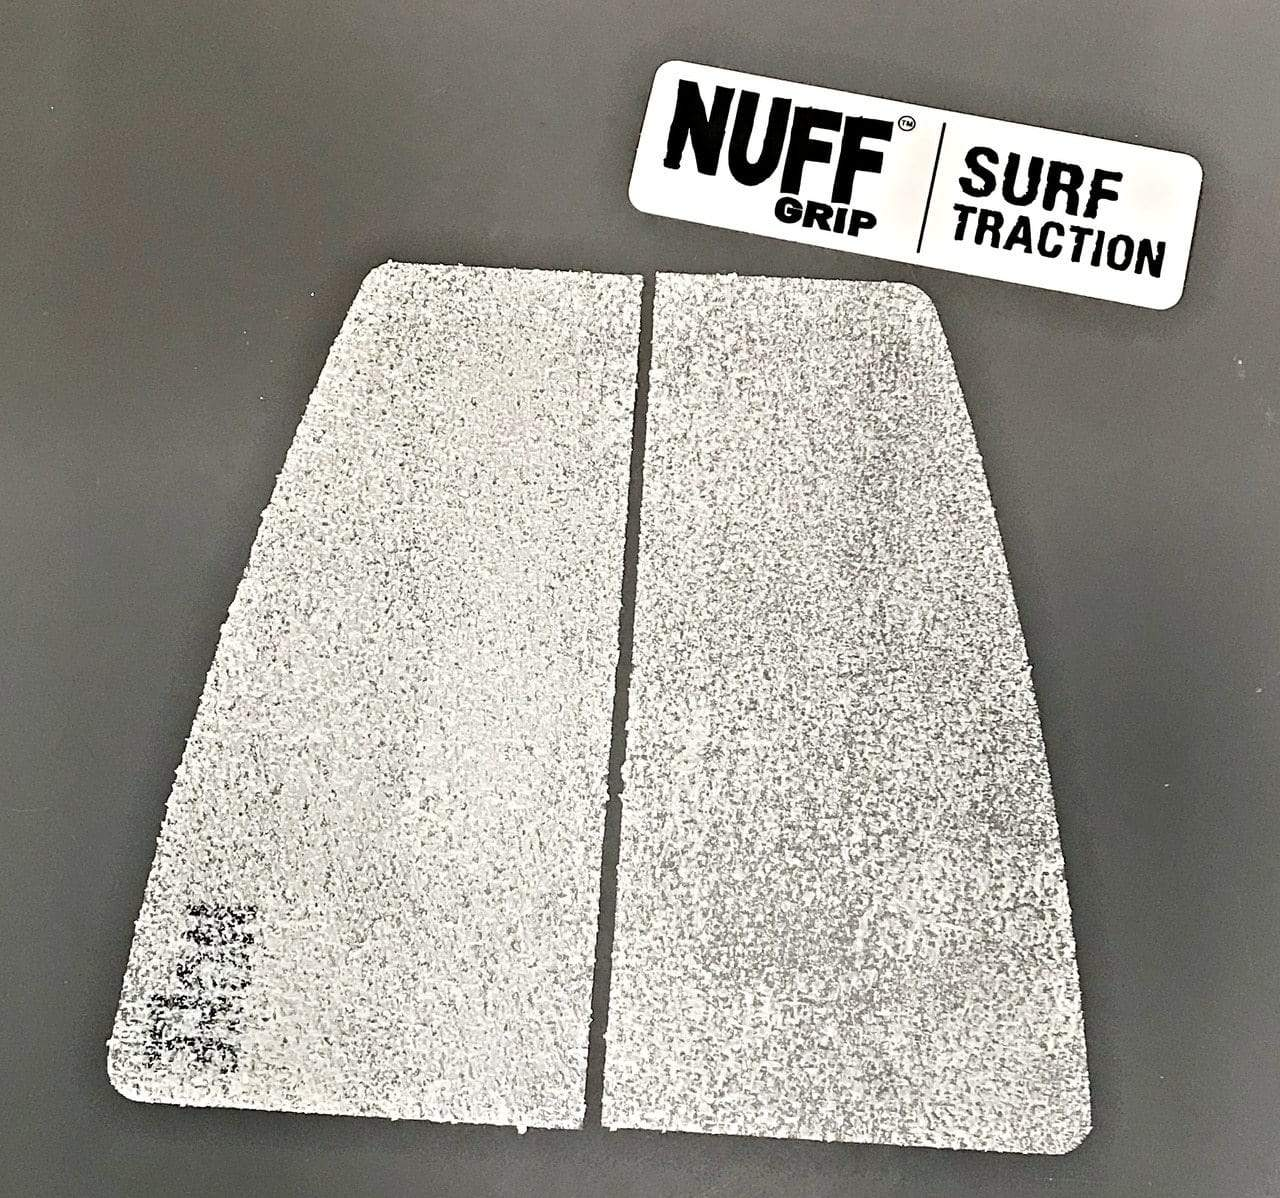 NuffGrip Surf Traction Grip Pad w/ Surf Wax, Sticky Bump Sticky Bump - wakeballast